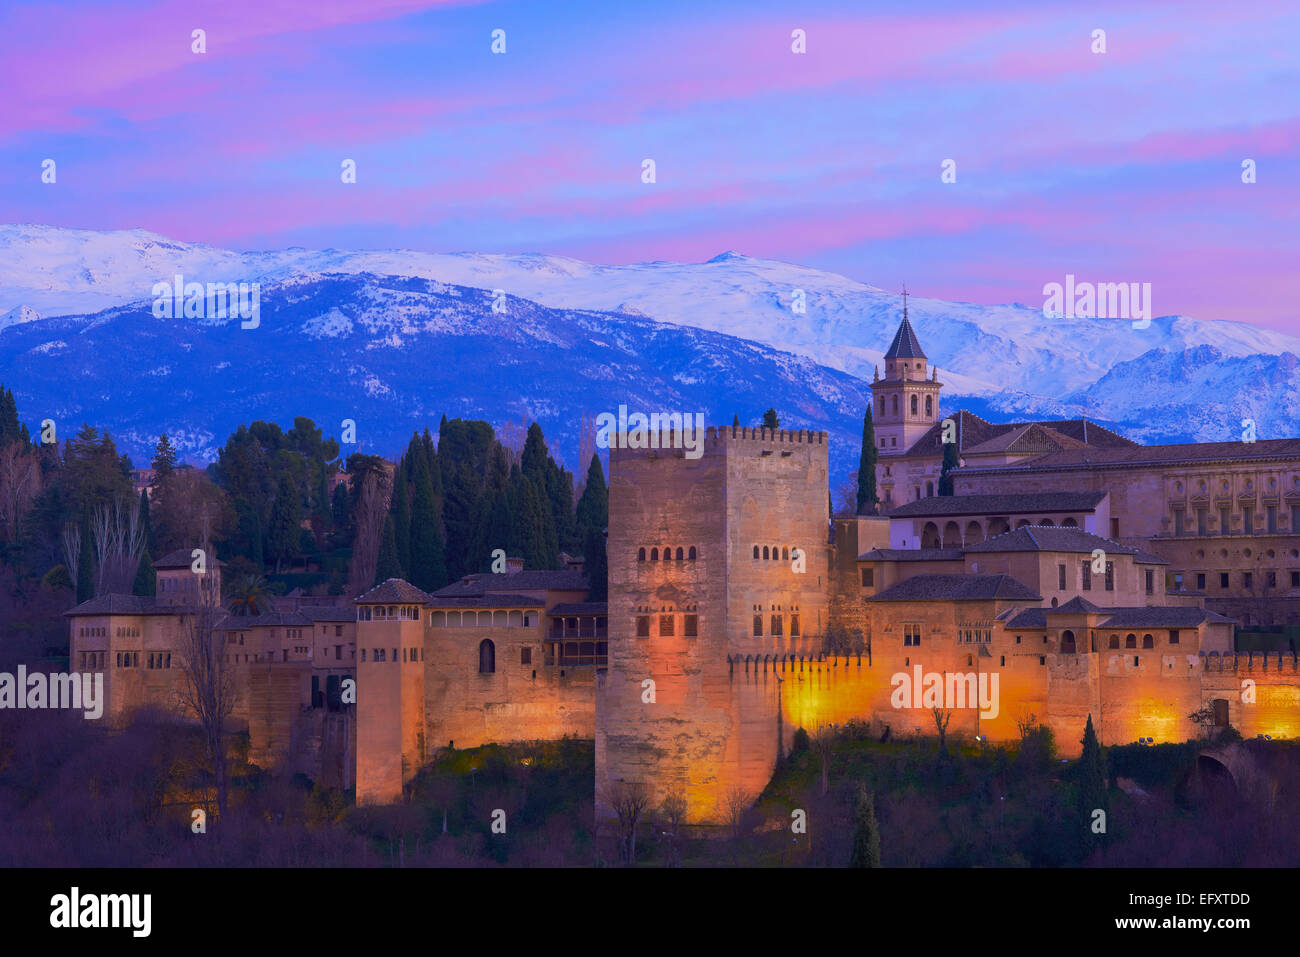 Alhambra, UNESCO World Heritage Site, Sierra Nevada and la Alhambra at Dusk, Granada, Andalusia, Spain - Stock Image